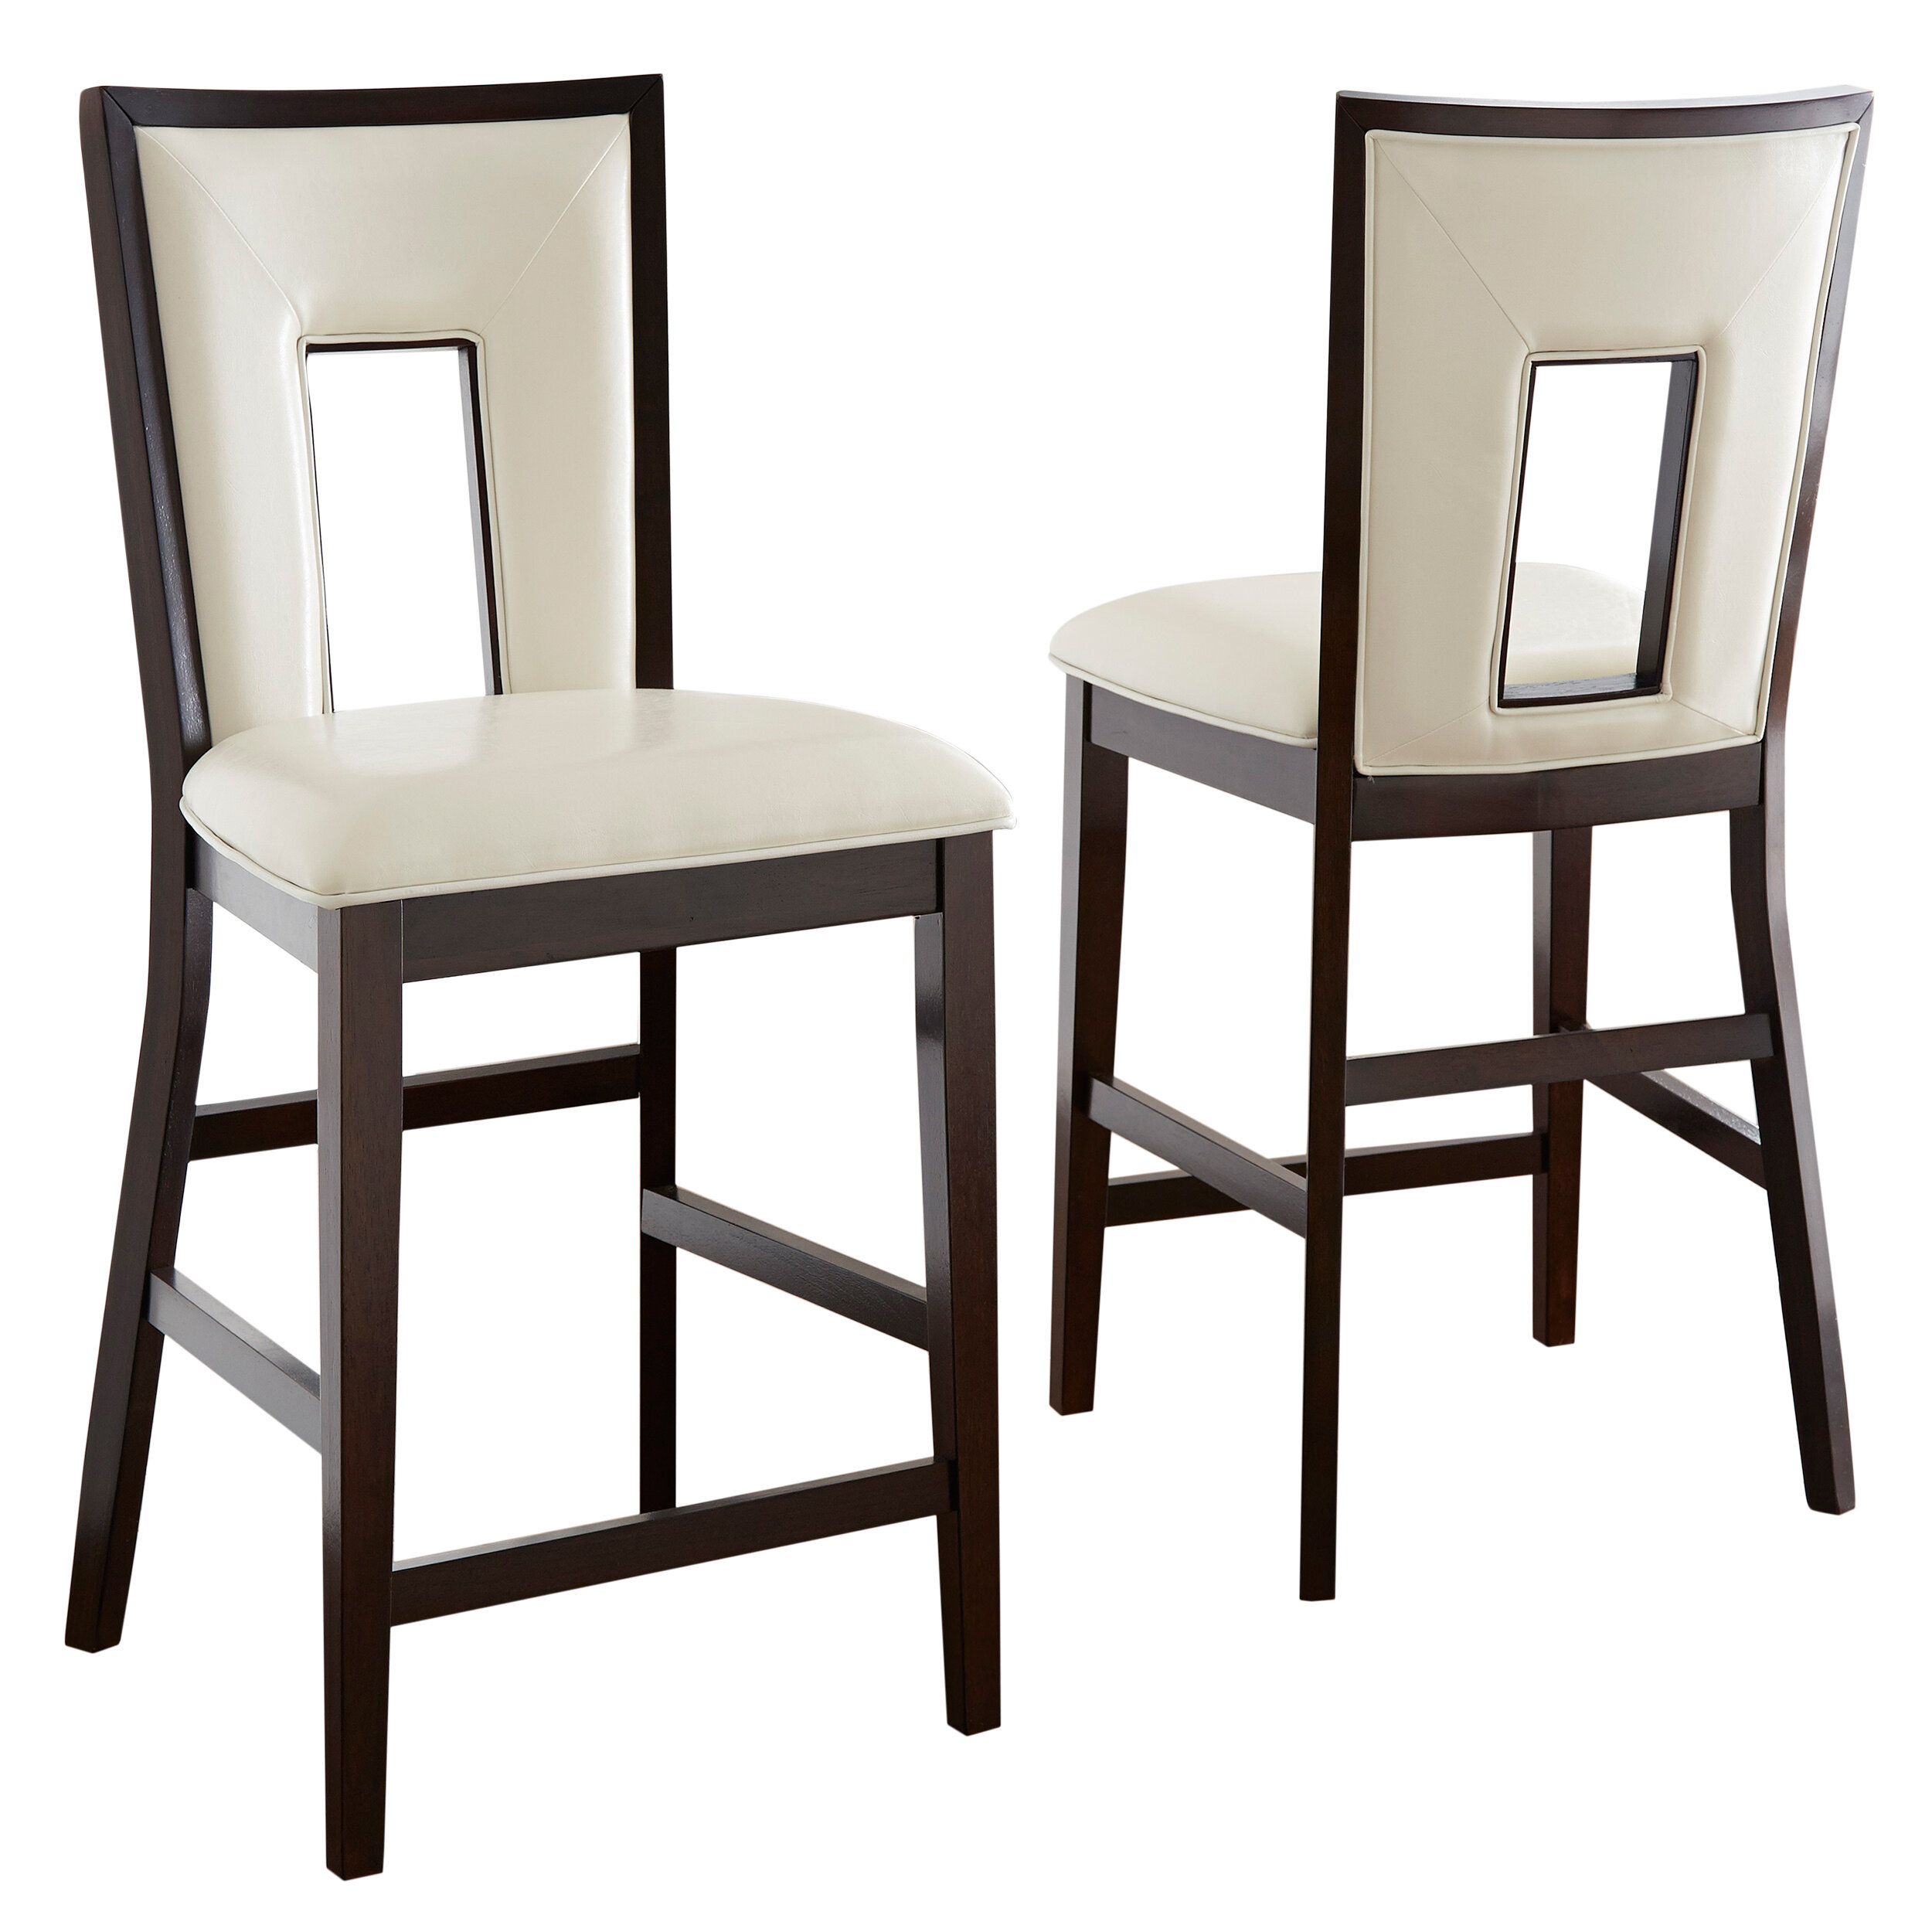 Brayden Studio Hillcrest 25 Bar Stool Reviews Wayfair